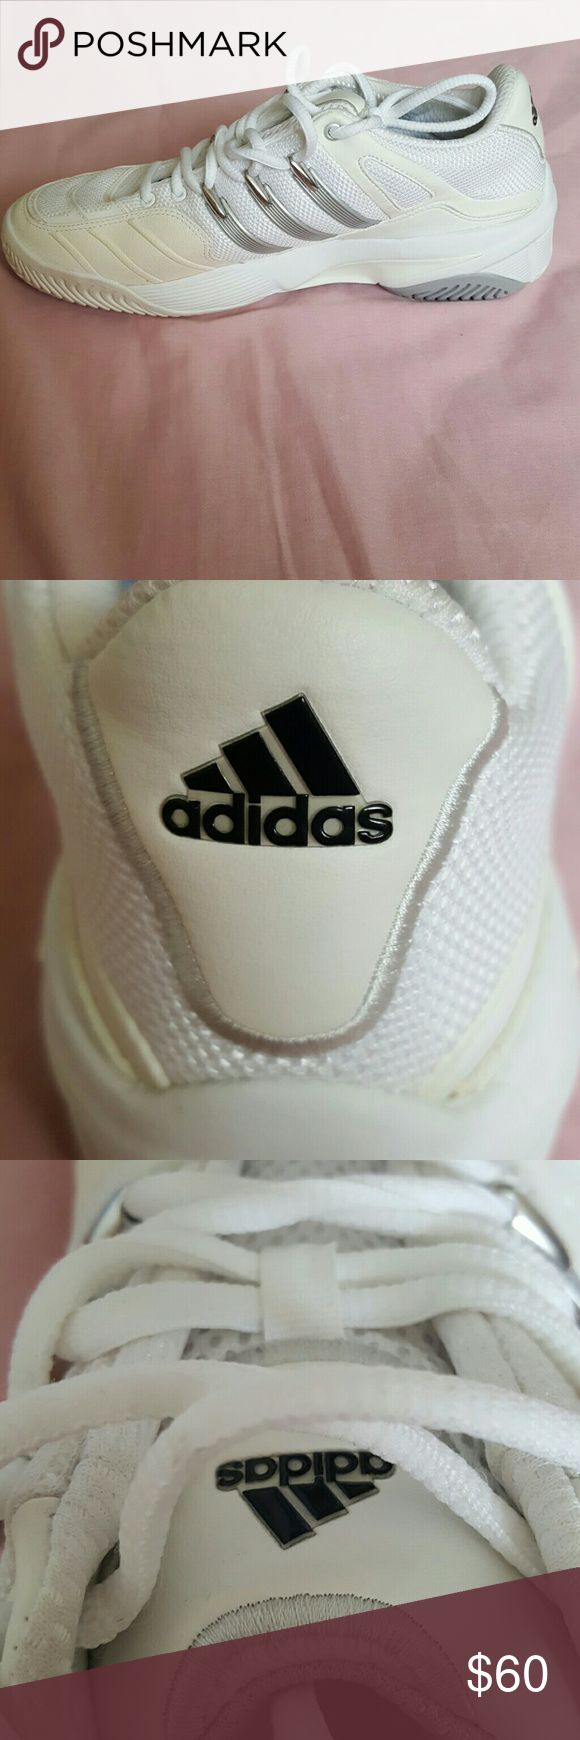 NEW Adidas Adiprene Sneakers Never worn!  Free gift with purchase! ♡ Adidas Shoes Sneakers